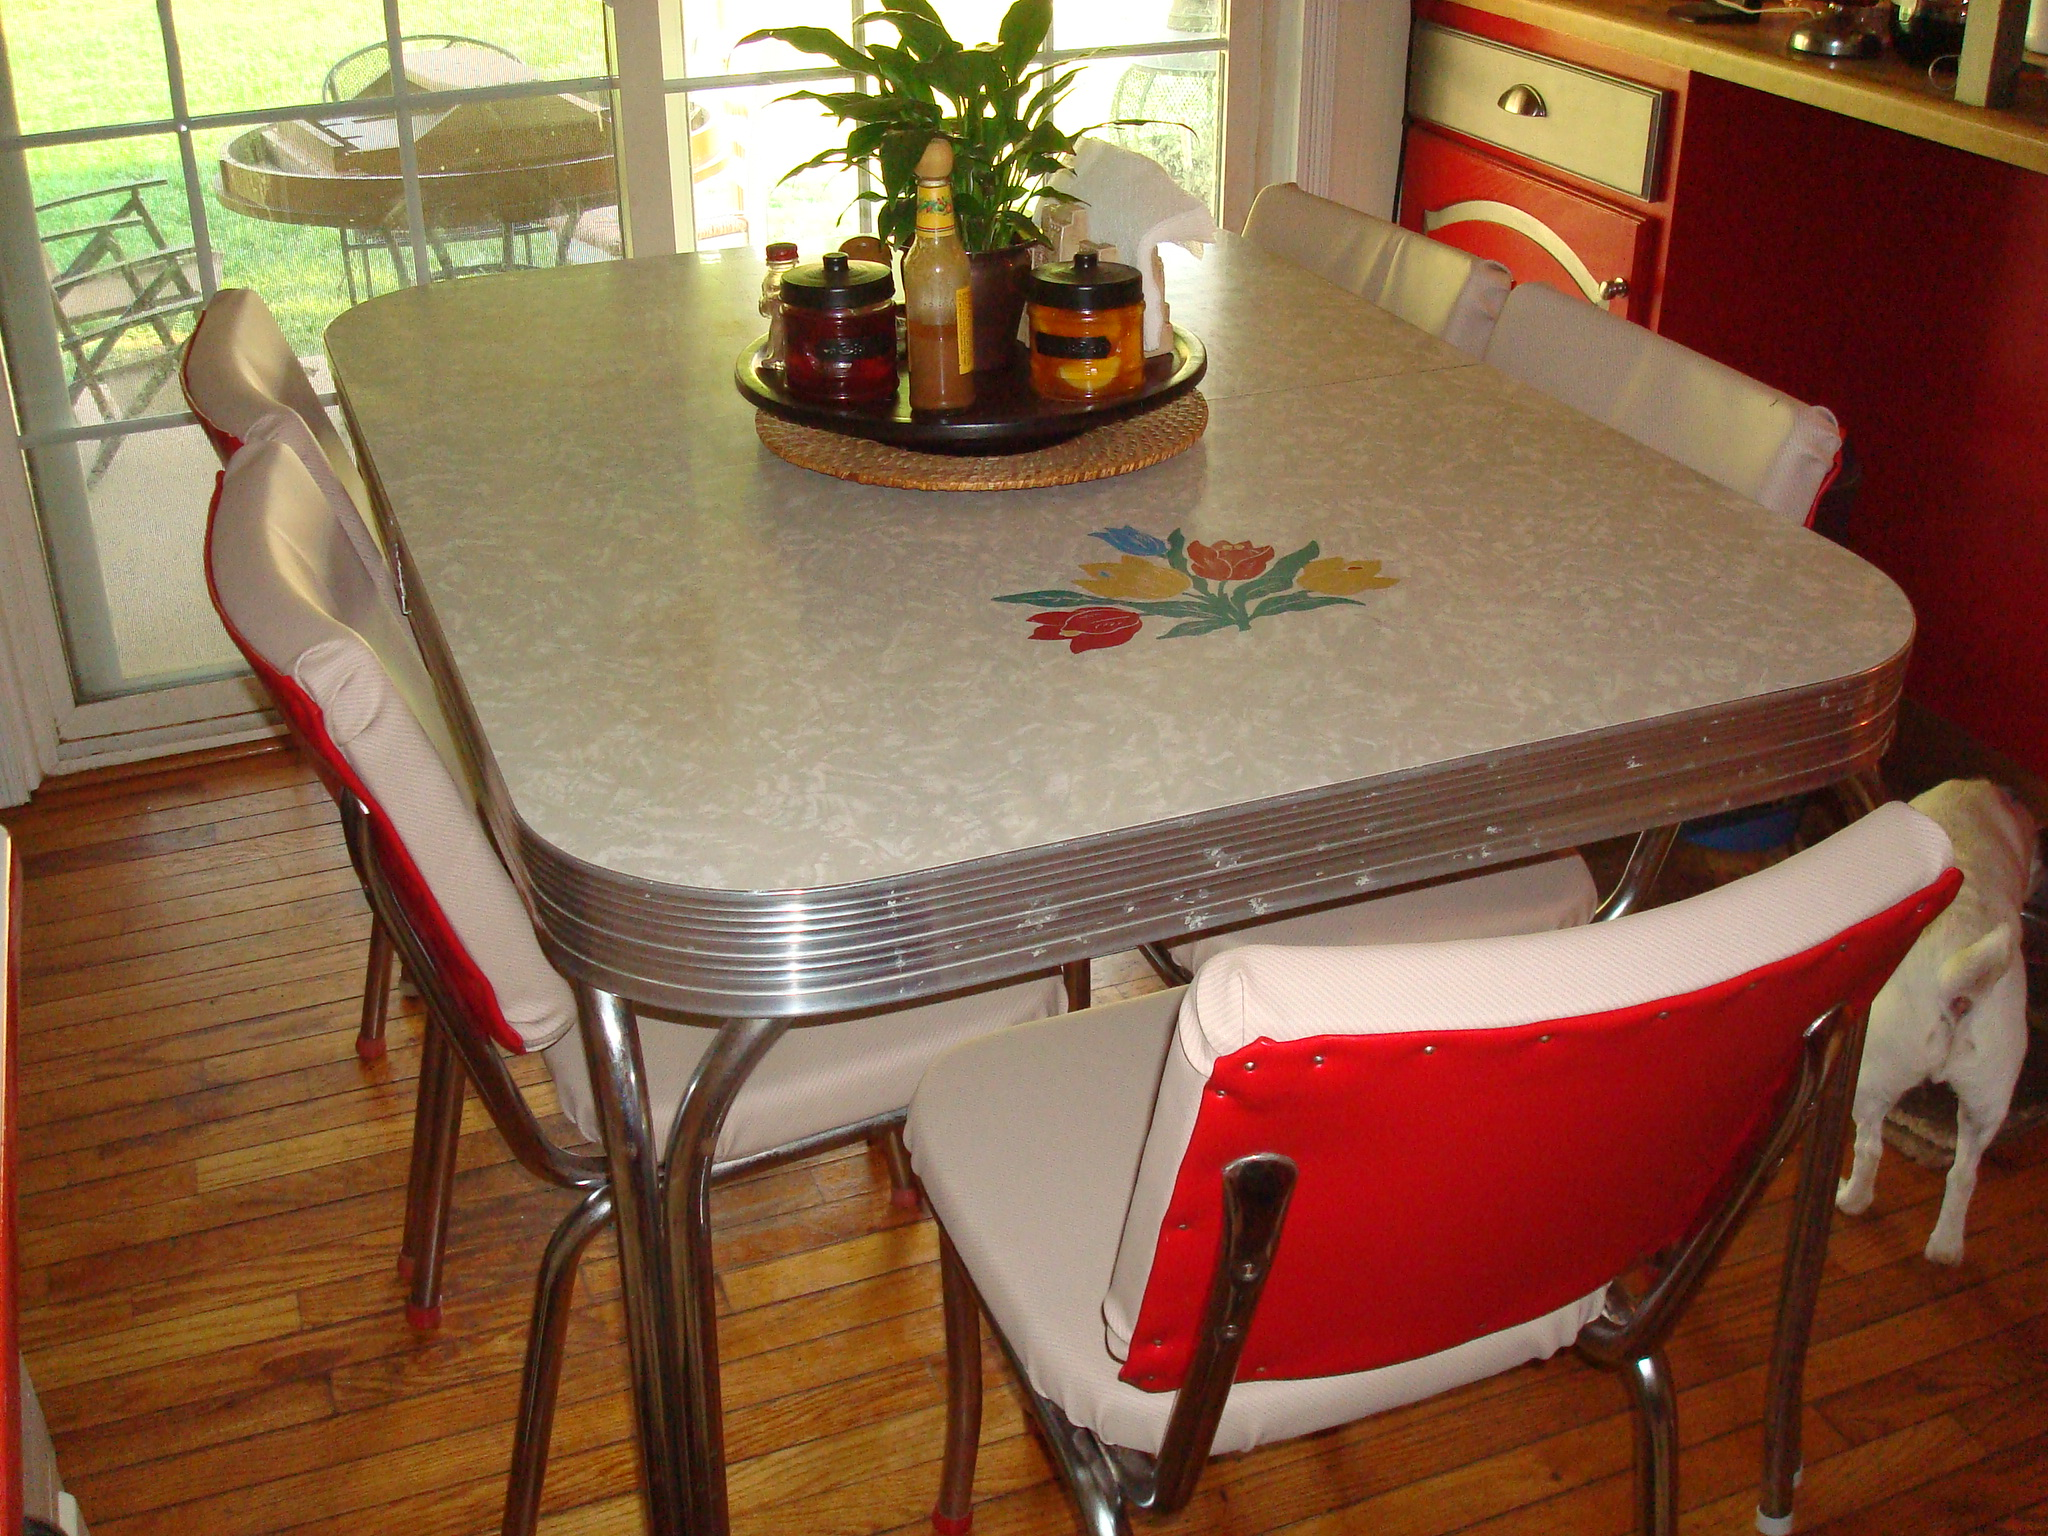 Elegant Retro kitchen table retro kitchen table